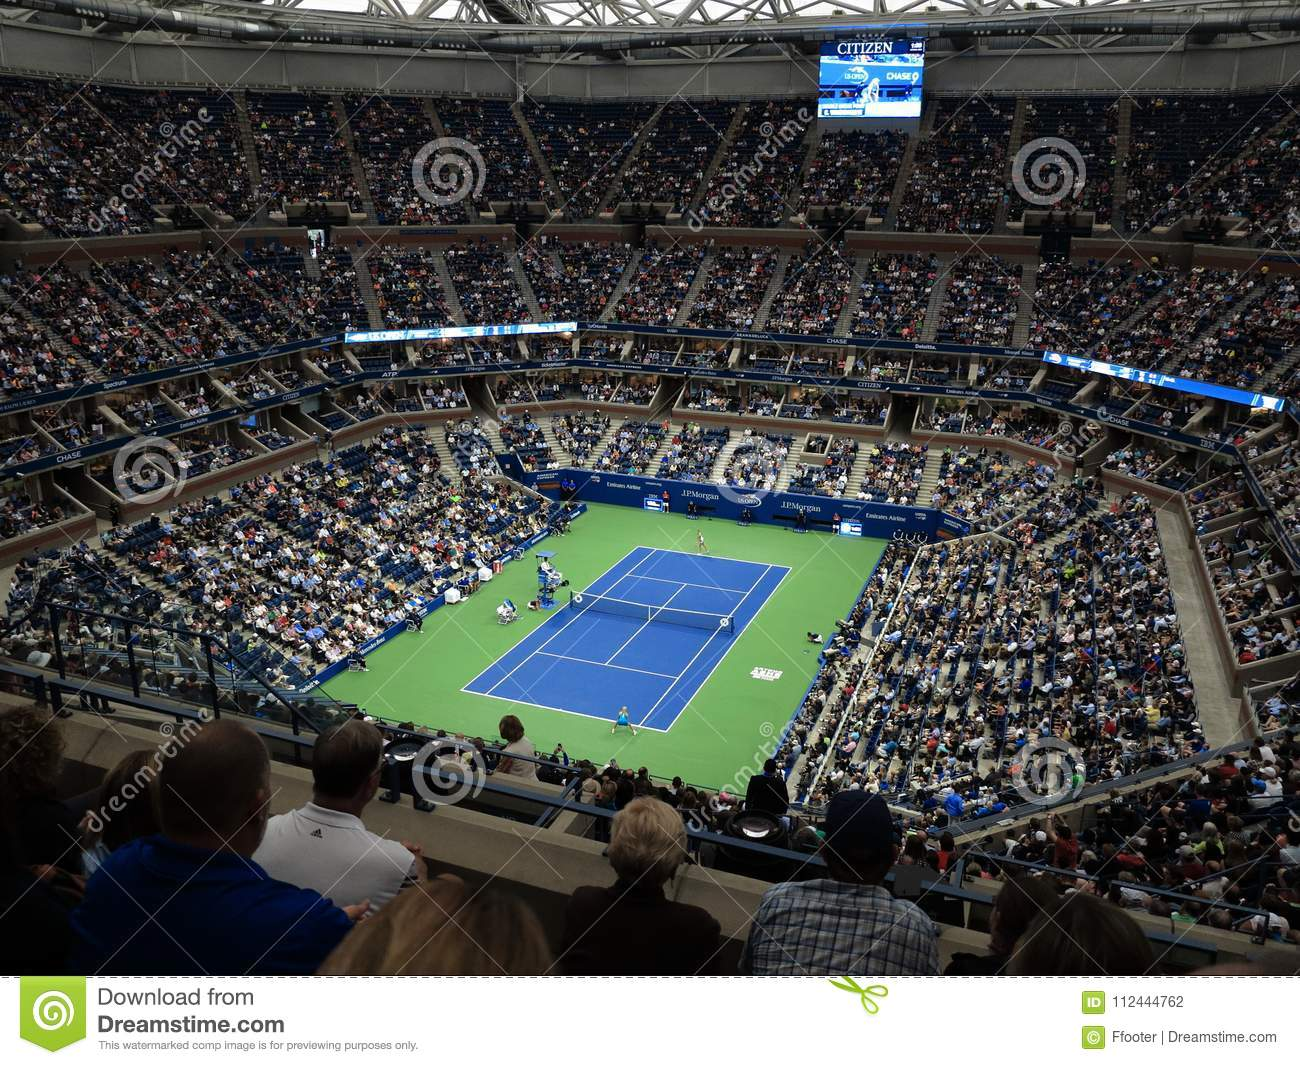 Ashe stadium - us open tenis